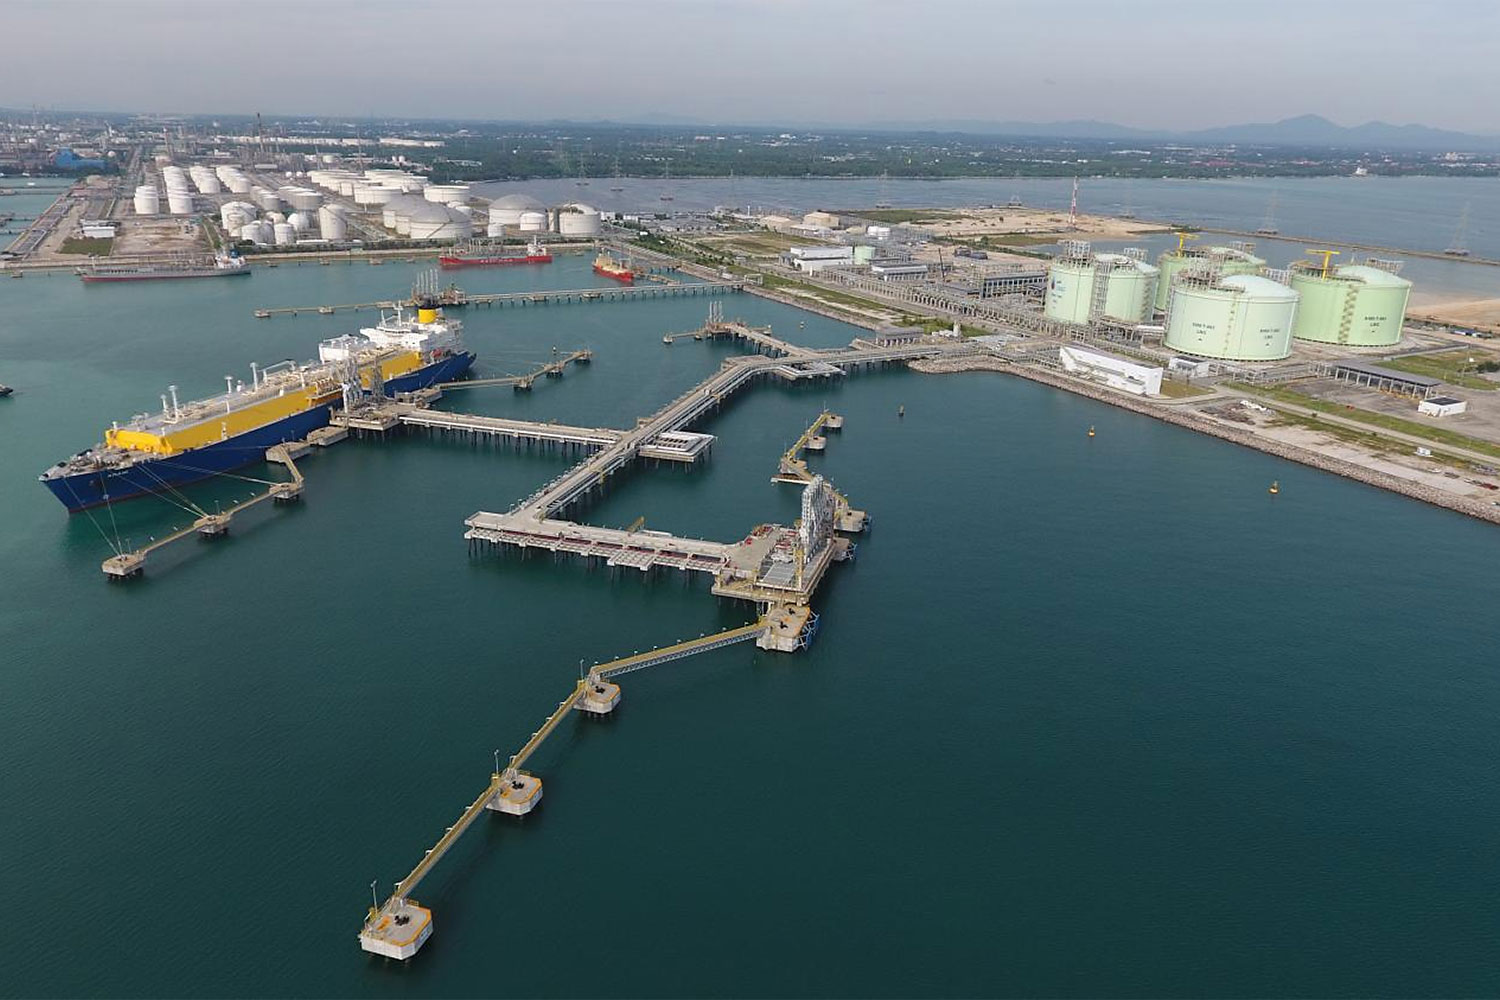 PTT's LNG receiving terminal in Rayong. LNG infrastructure is among the large energy projects planned for 2020.